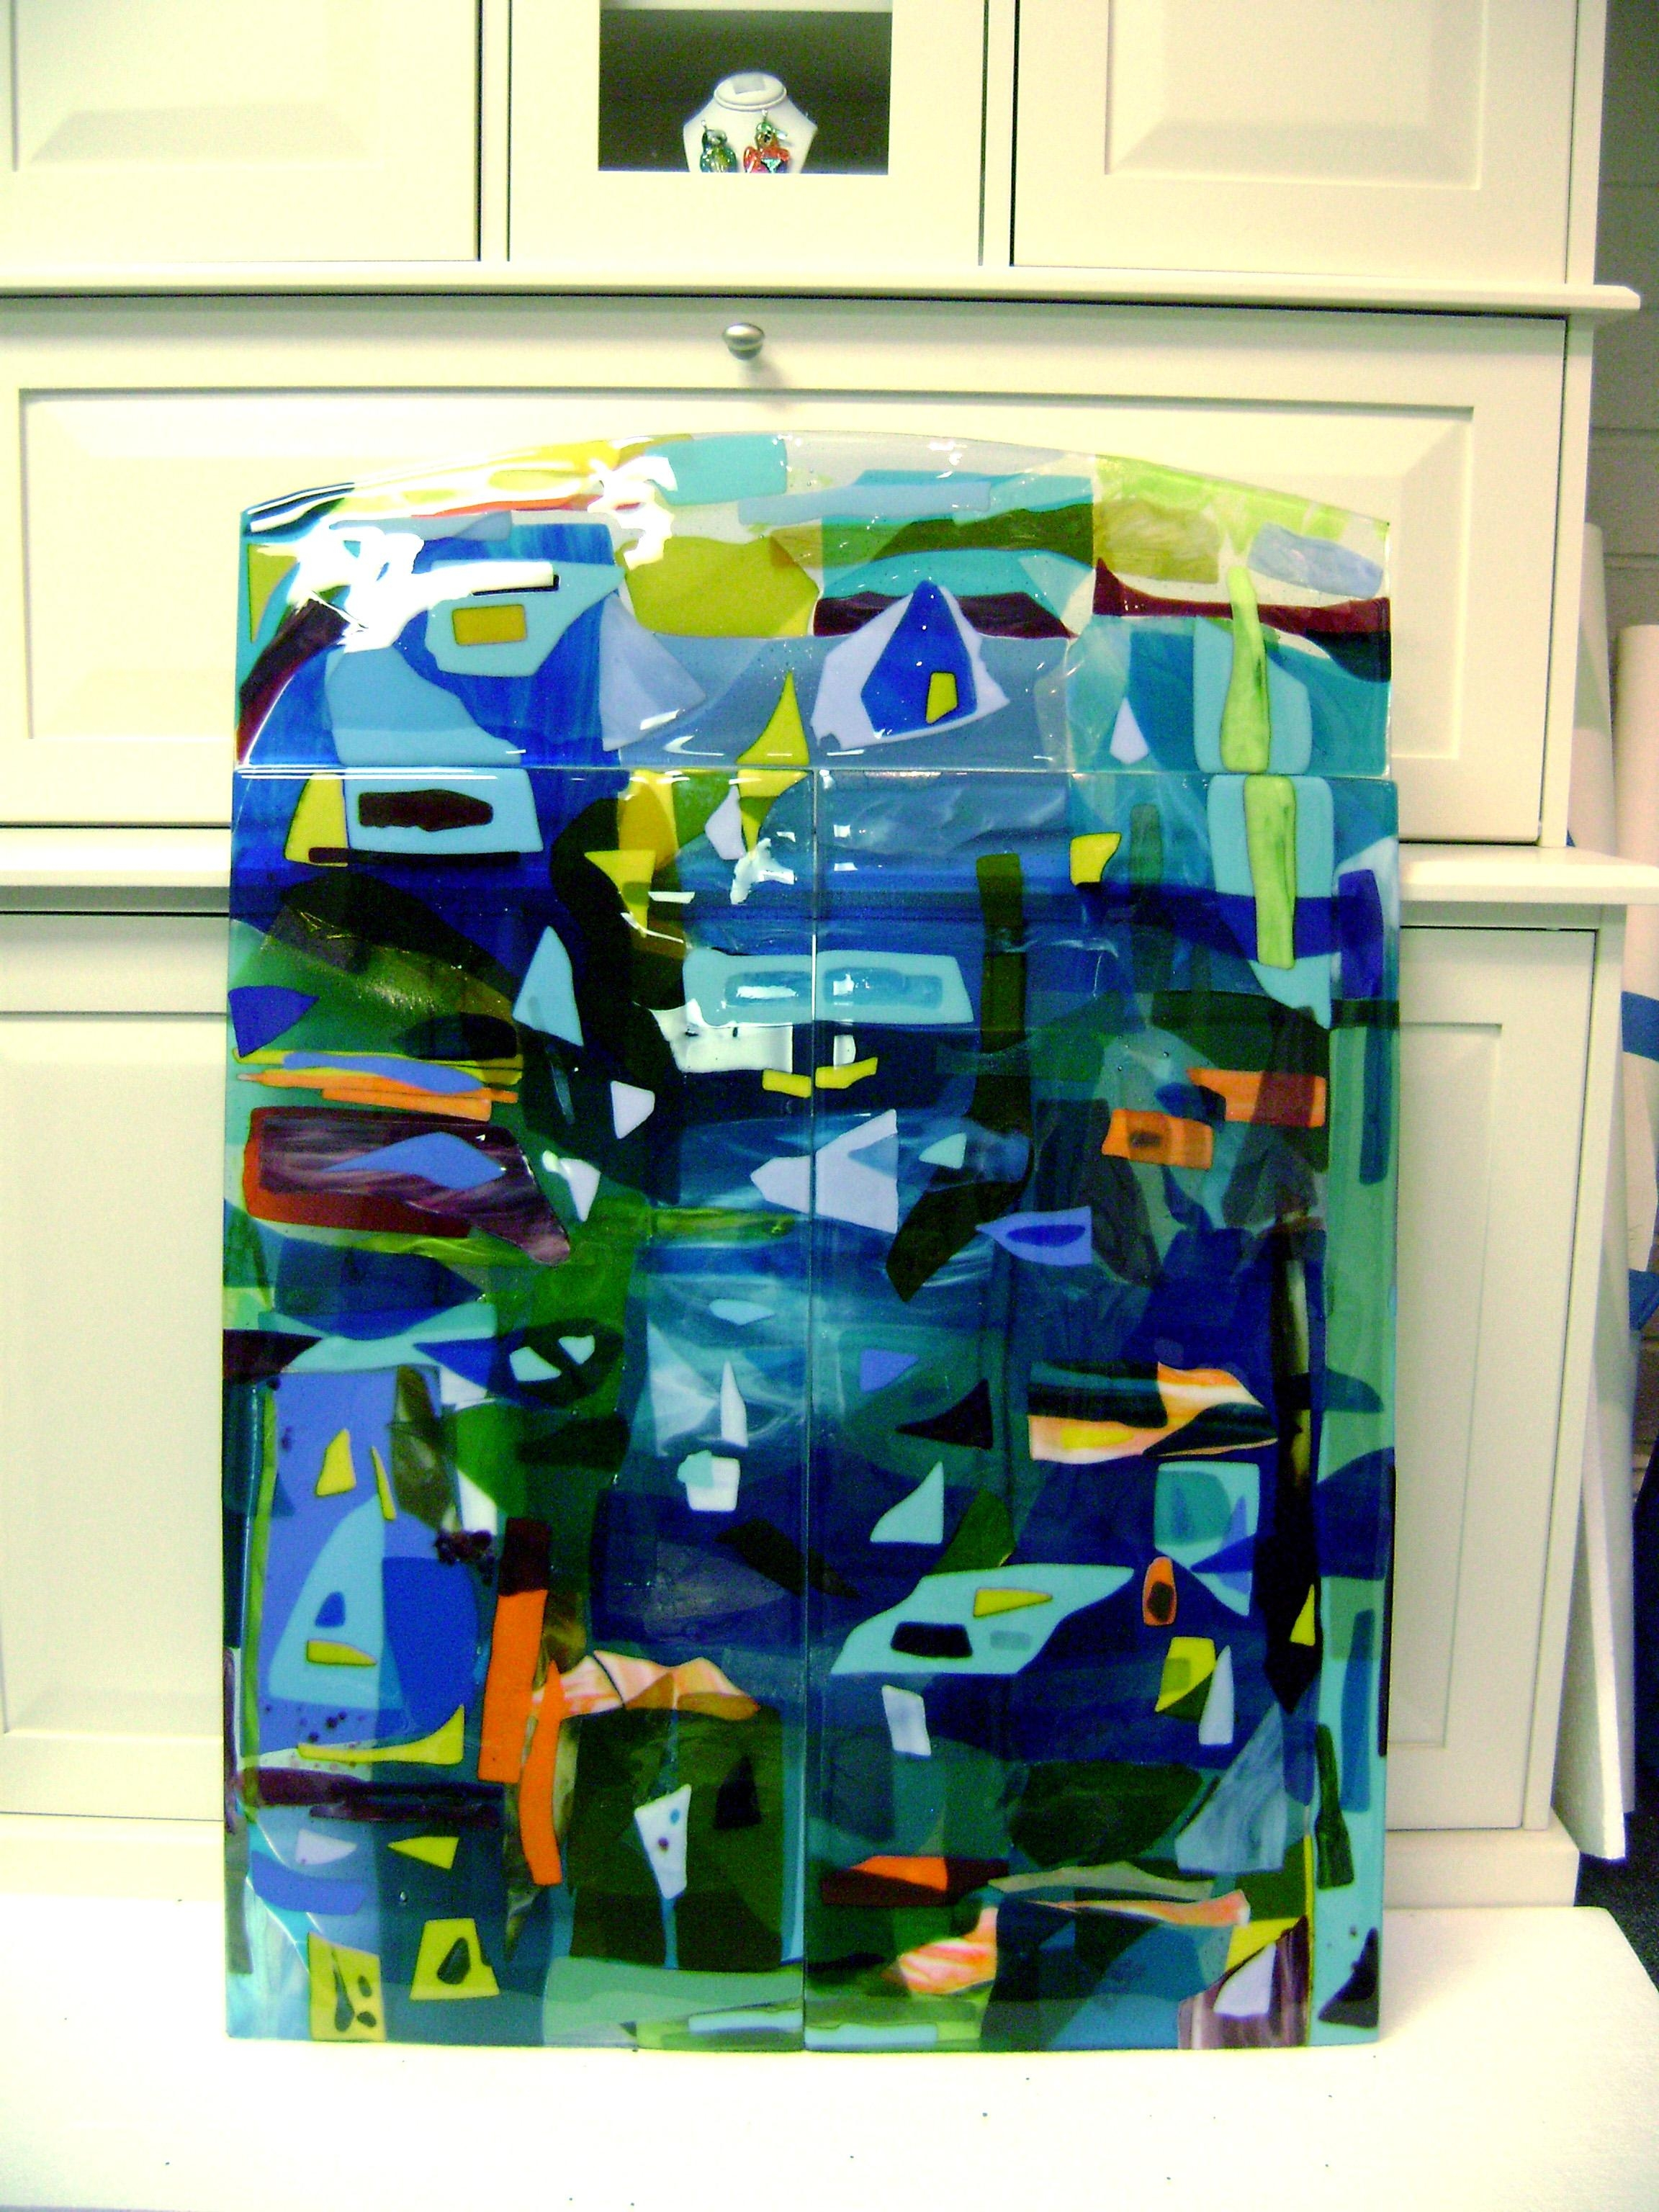 Colorful Fused Glass Wall Art Panel | Designer Glass Mosaics Regarding Glass Wall Art Panels (View 13 of 20)